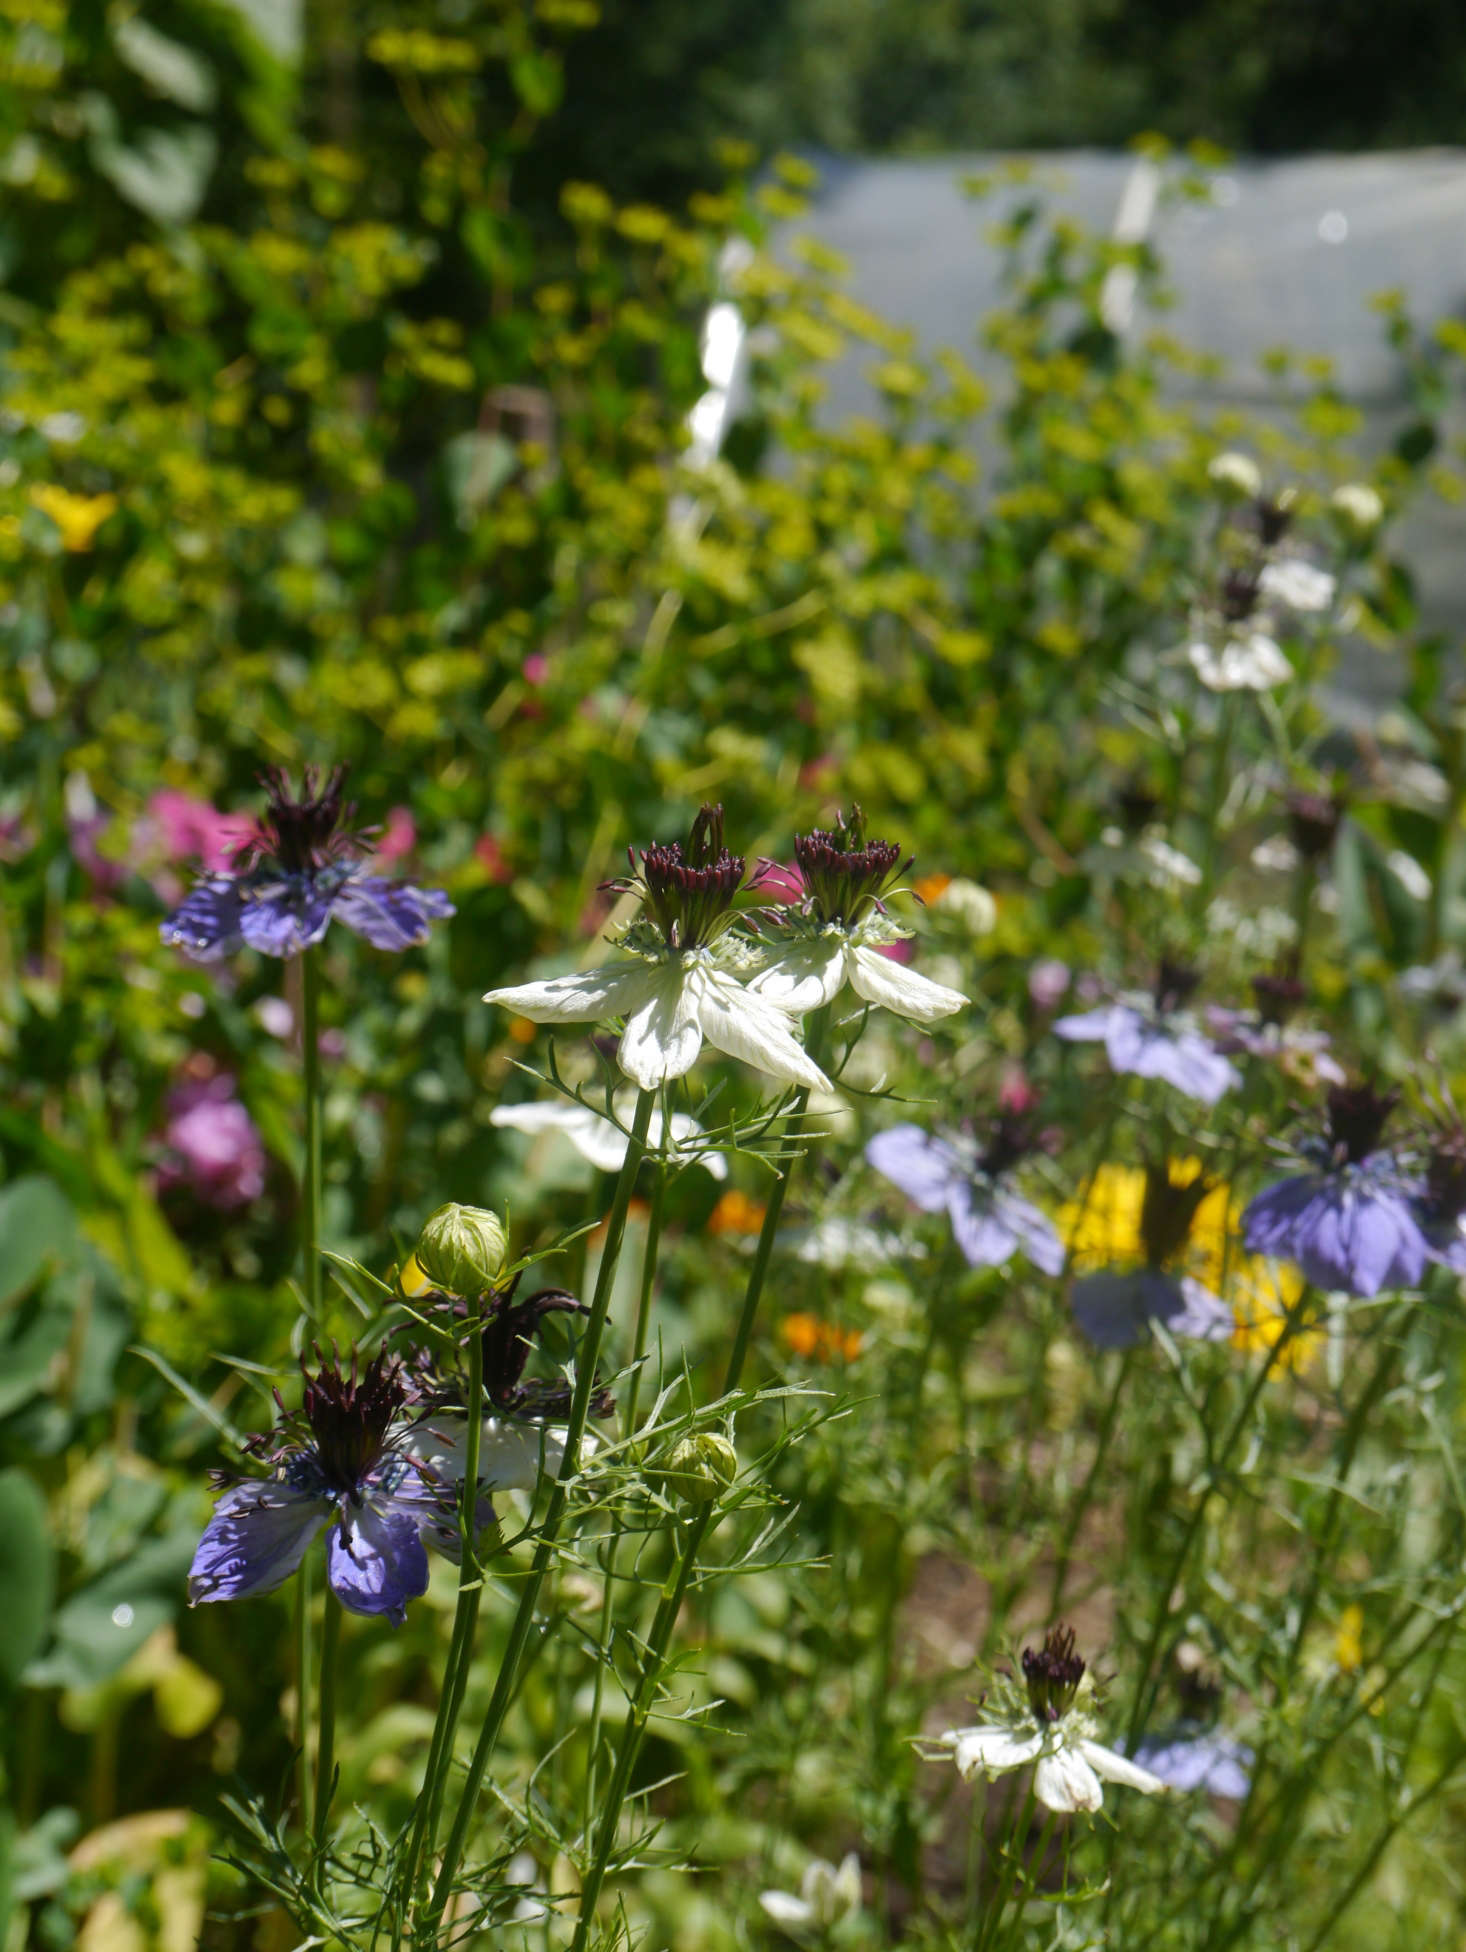 Love-in-a-Mist: What You Need to Know to Successfully Grow